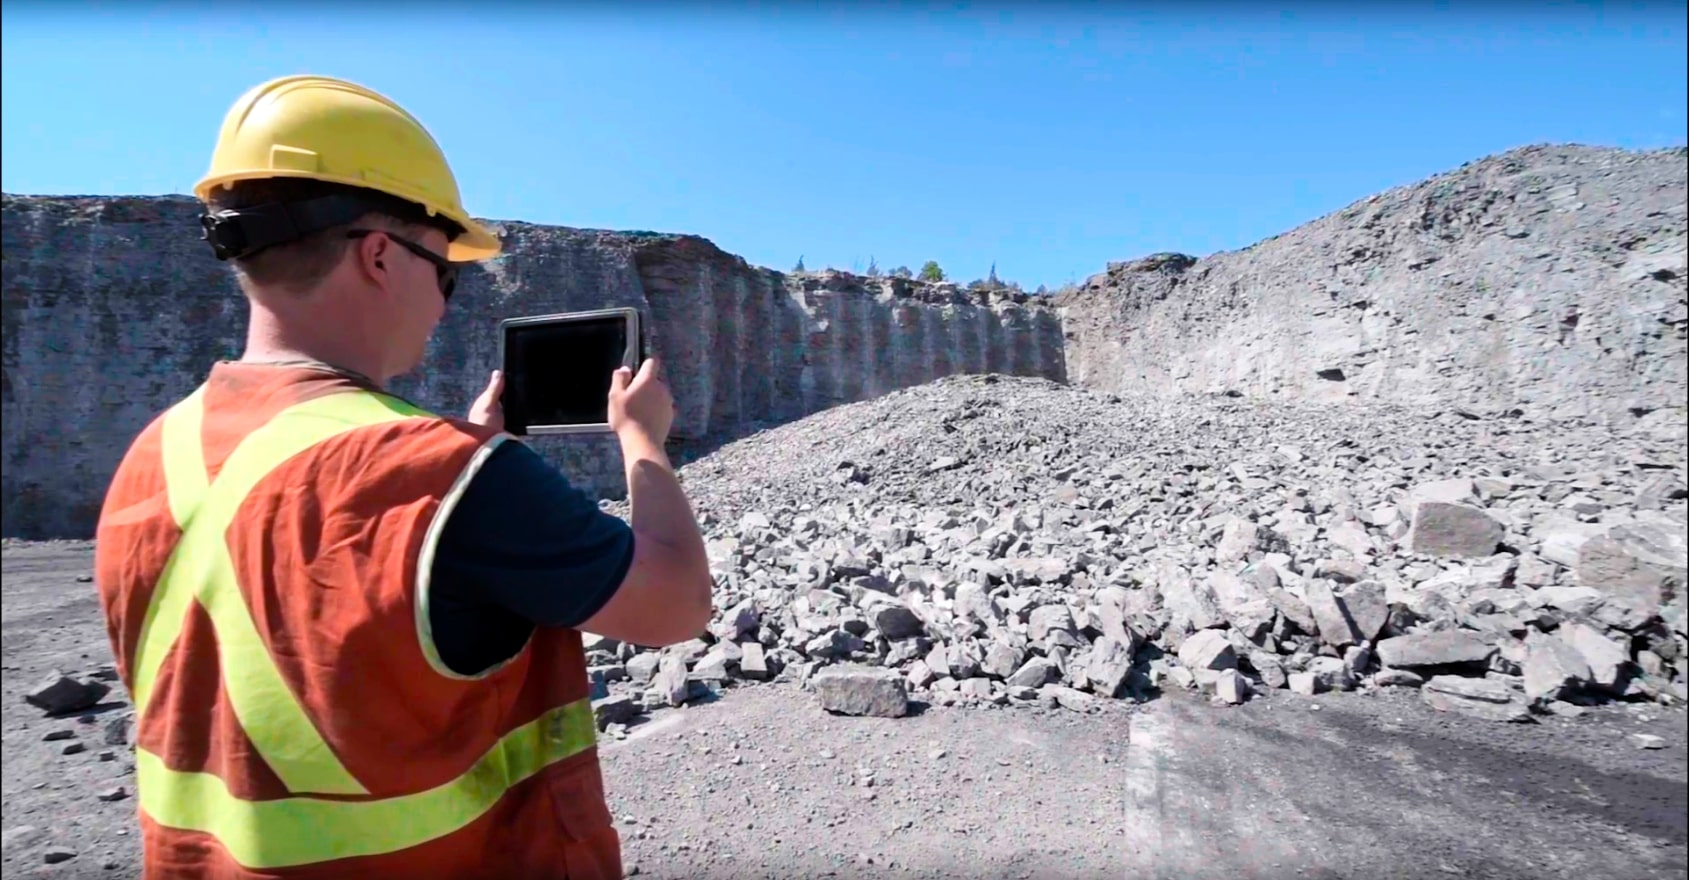 Waist up shot of a worker wearing a safety vest and a hard hat taking a photo of a rock pile using an ipad with Wipfrag to see fragmentation analysis.